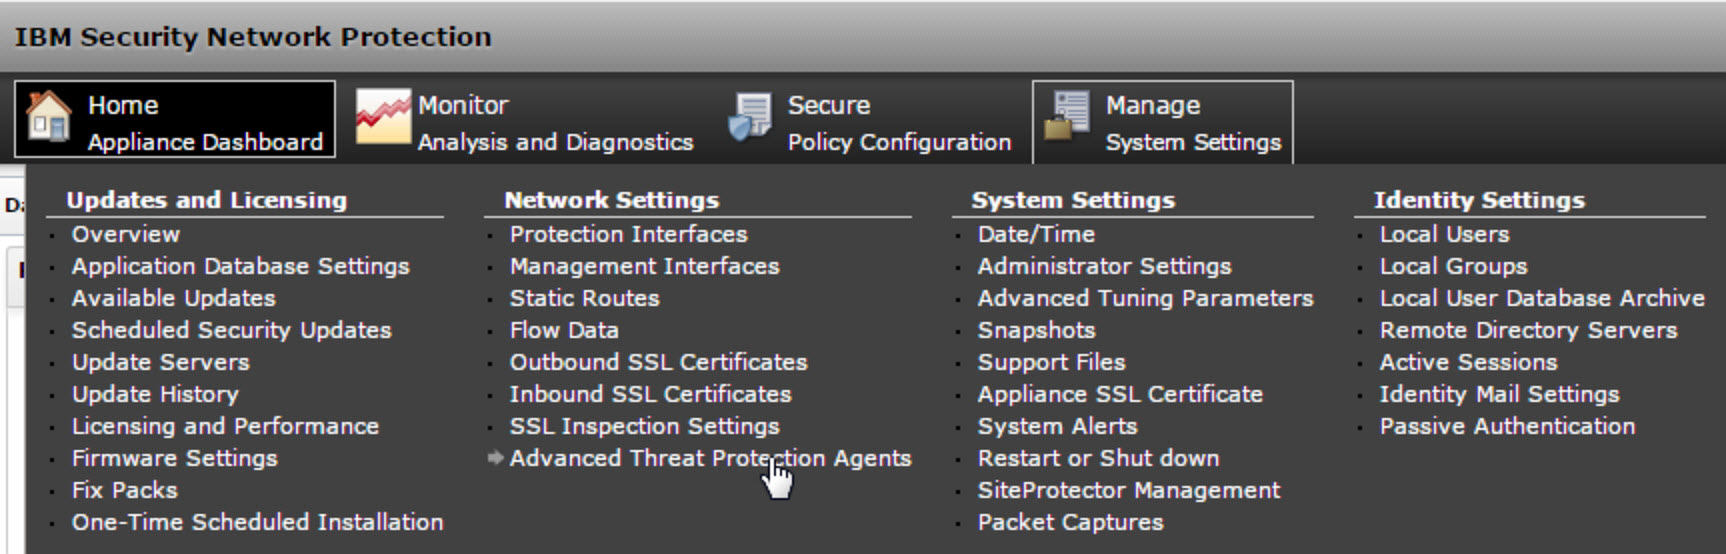 Configuring IBM Security Network Protection